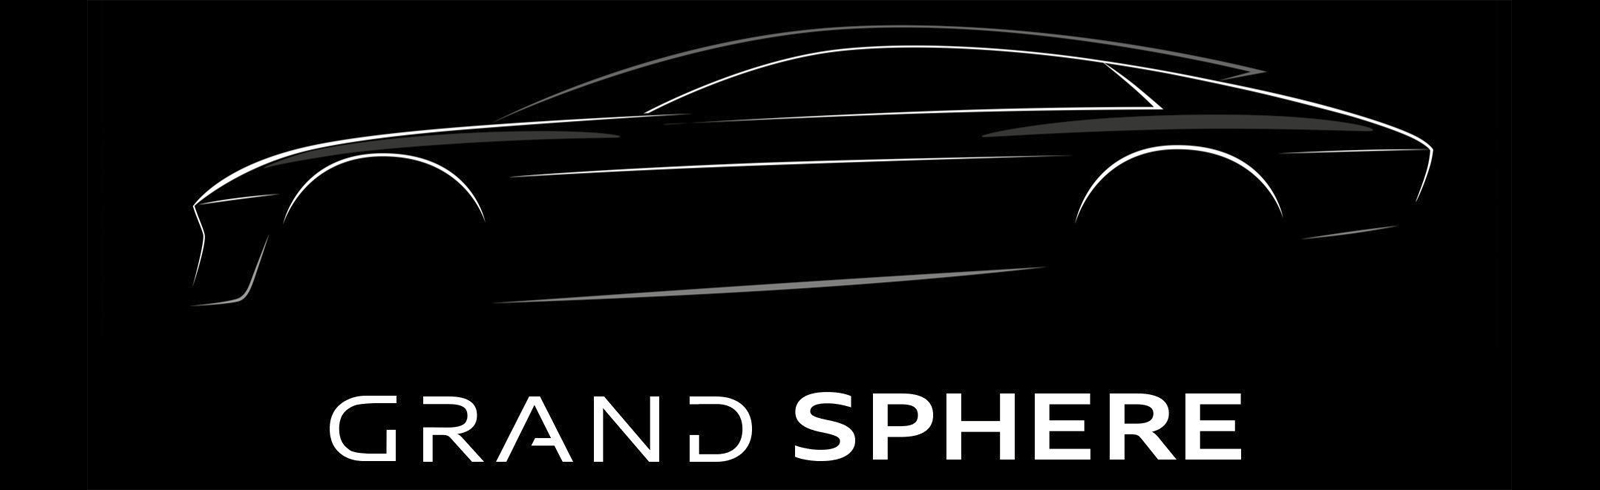 """Audi teases three concept cars under the new """"sphere"""" brand for luxury electrified vehicles"""